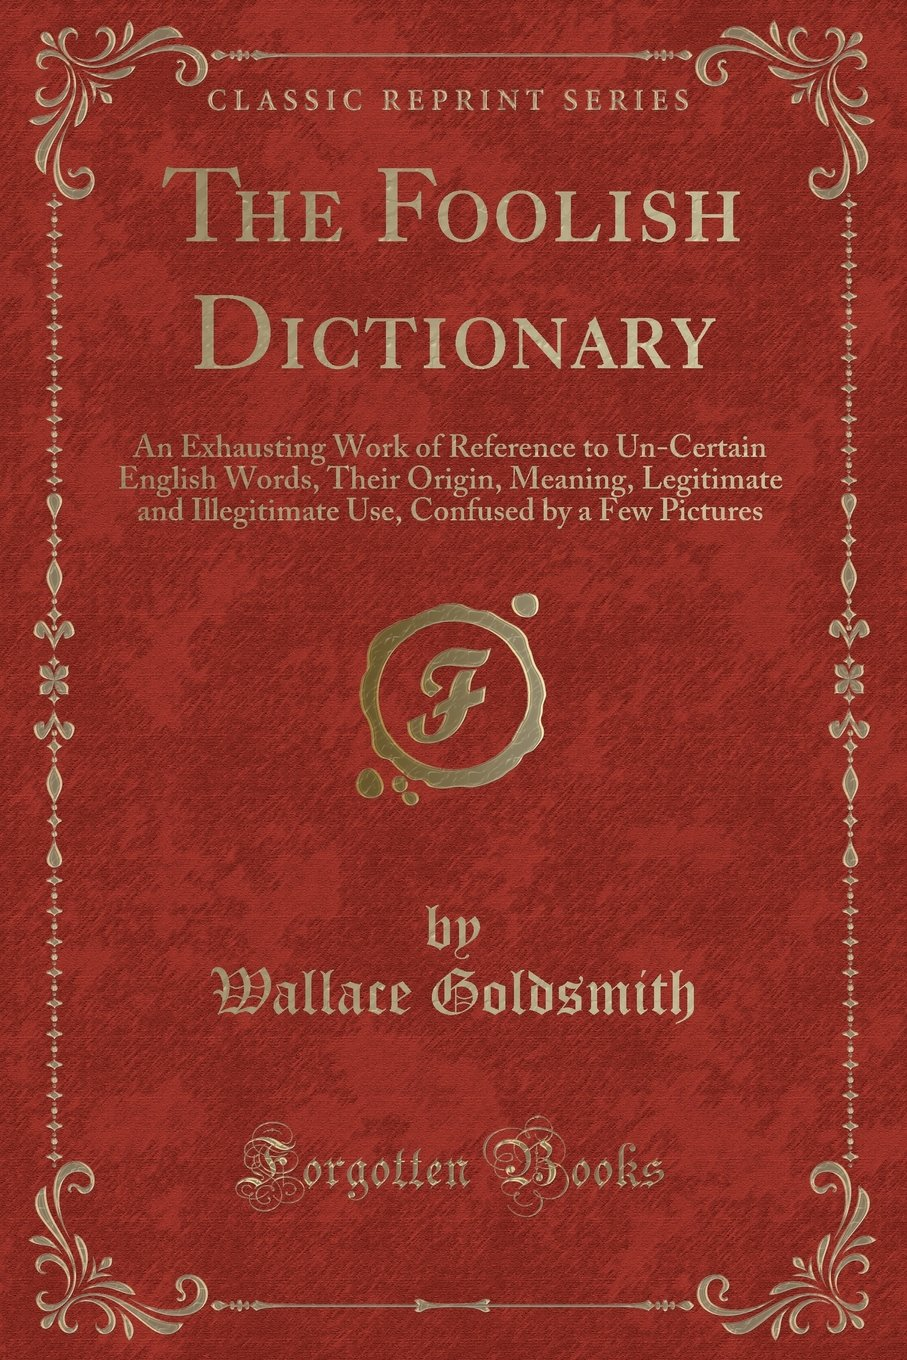 Download The Foolish Dictionary: An Exhausting Work of Reference to Un-Certain English Words, Their Origin, Meaning, Legitimate and Illegitimate Use, Confused by a Few Pictures (Classic Reprint) pdf